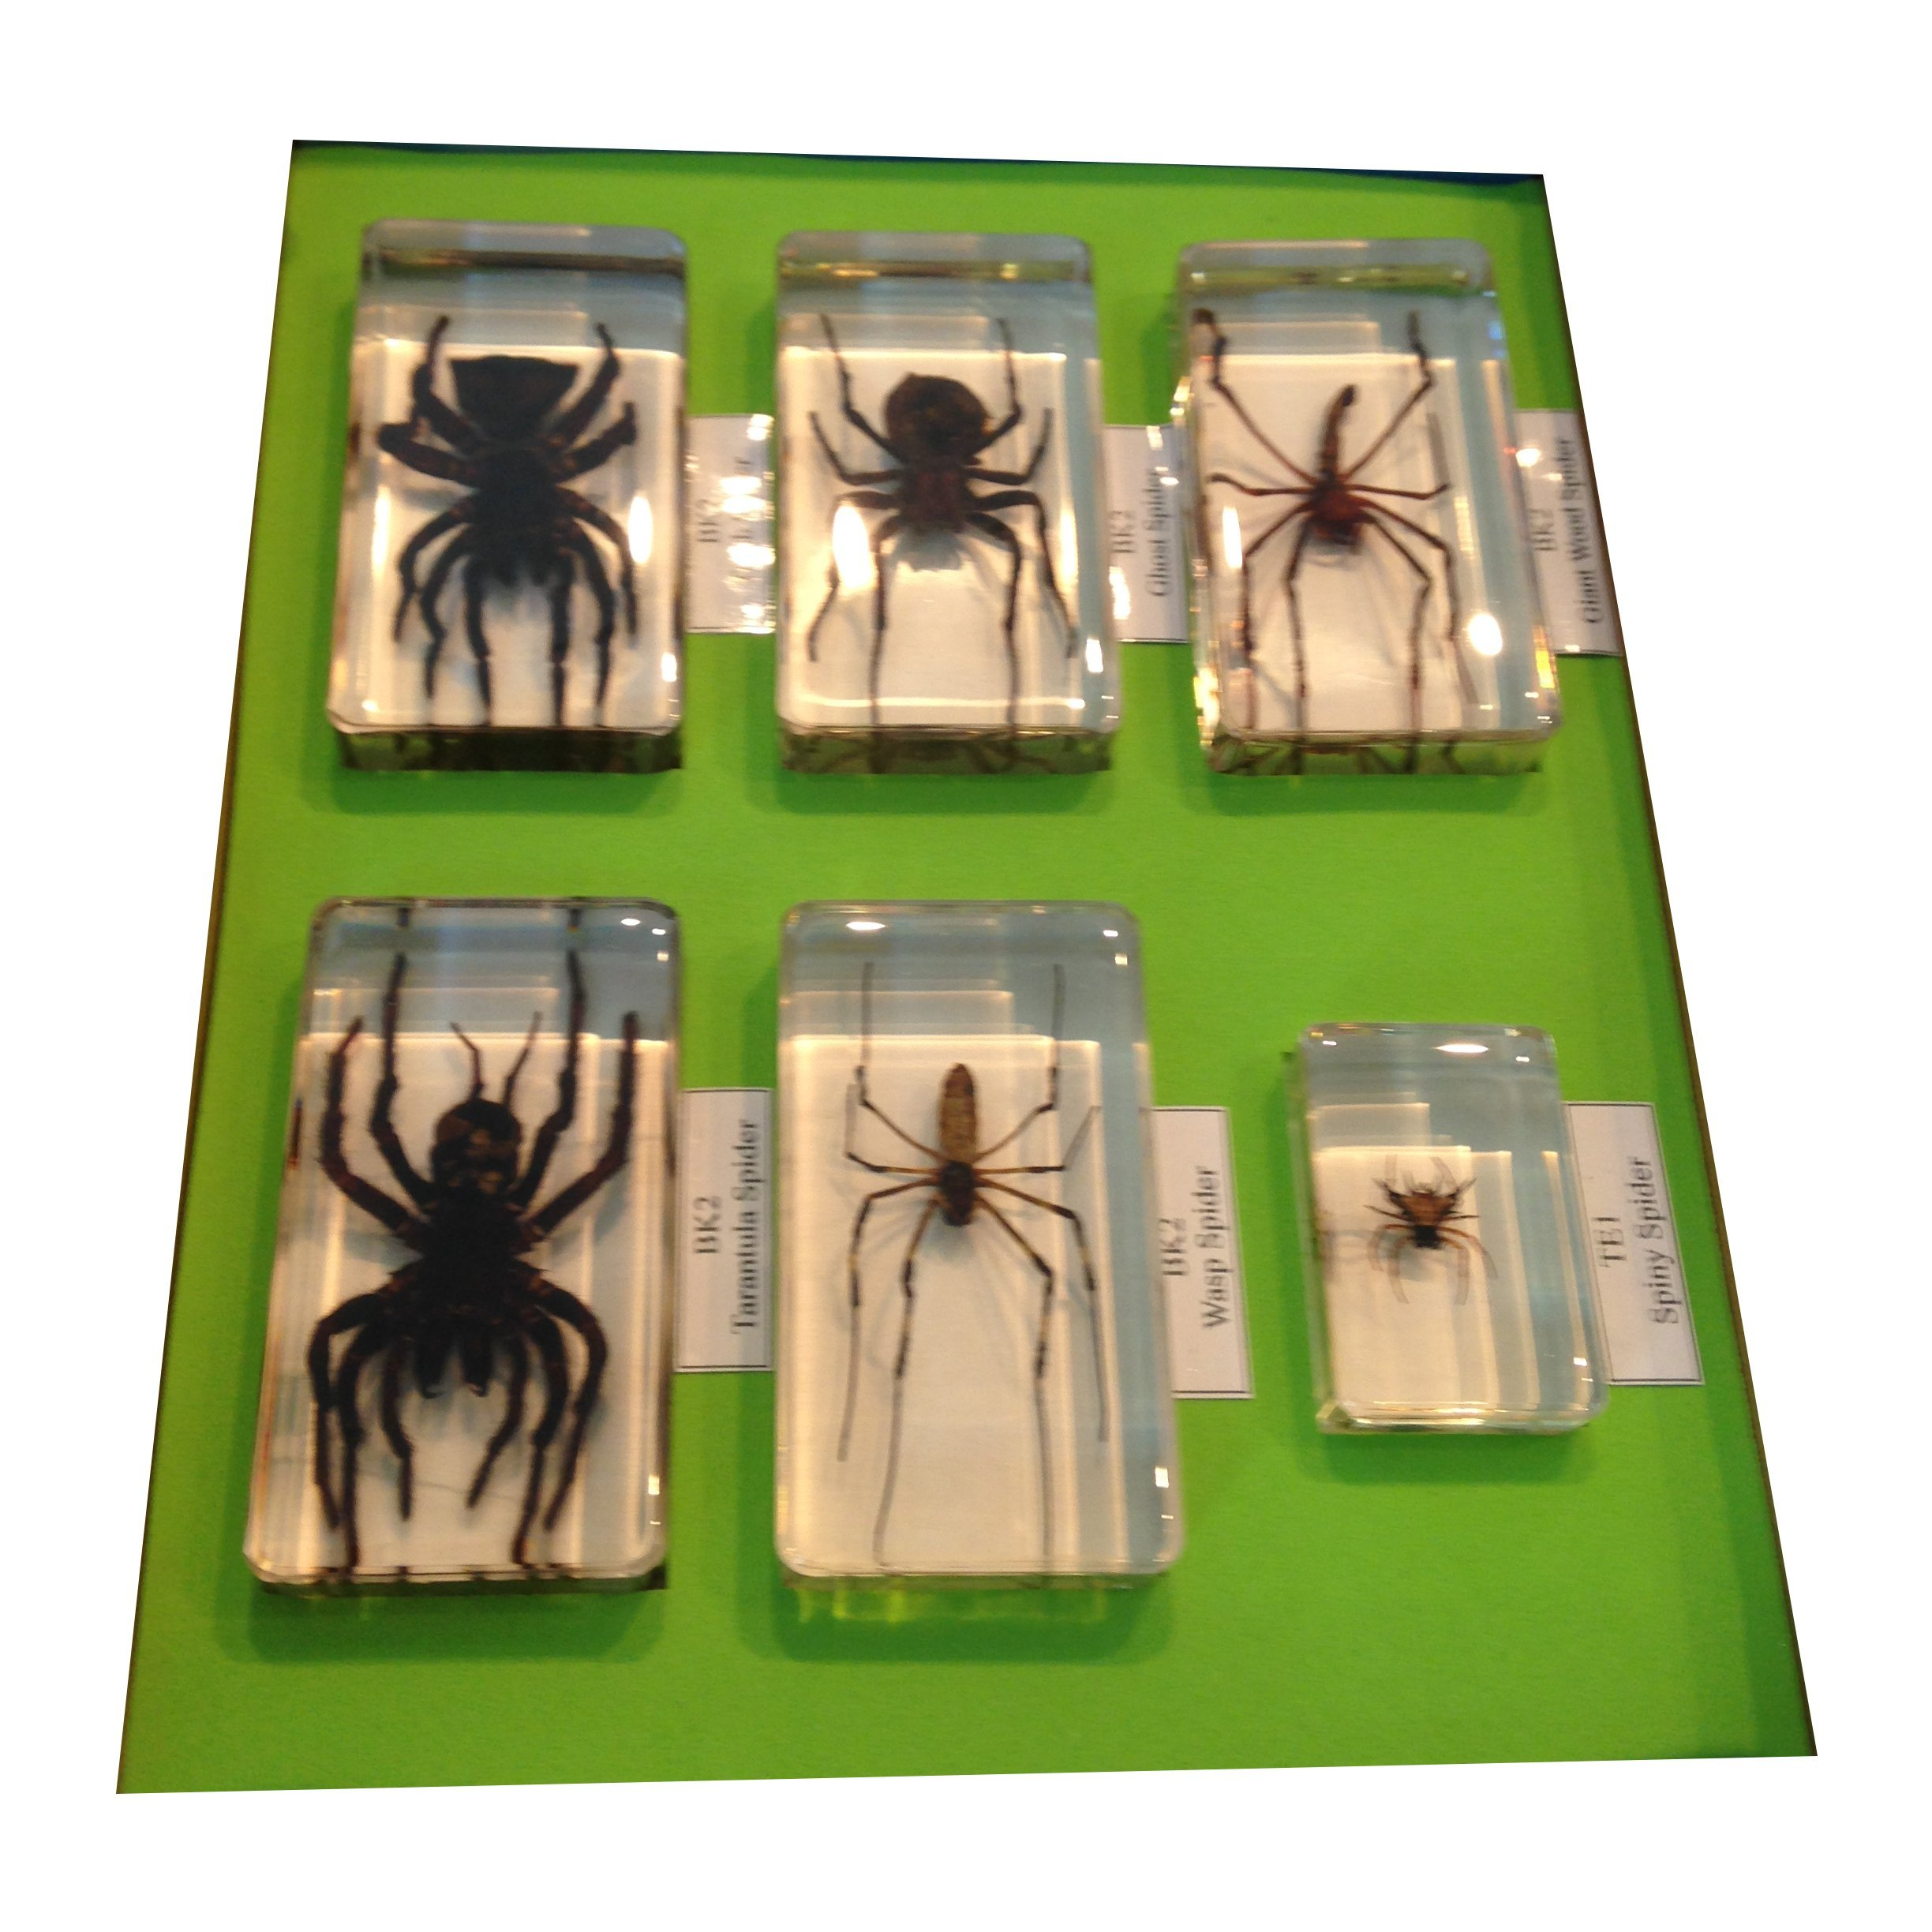 Six Spiders in Acrylic Collection